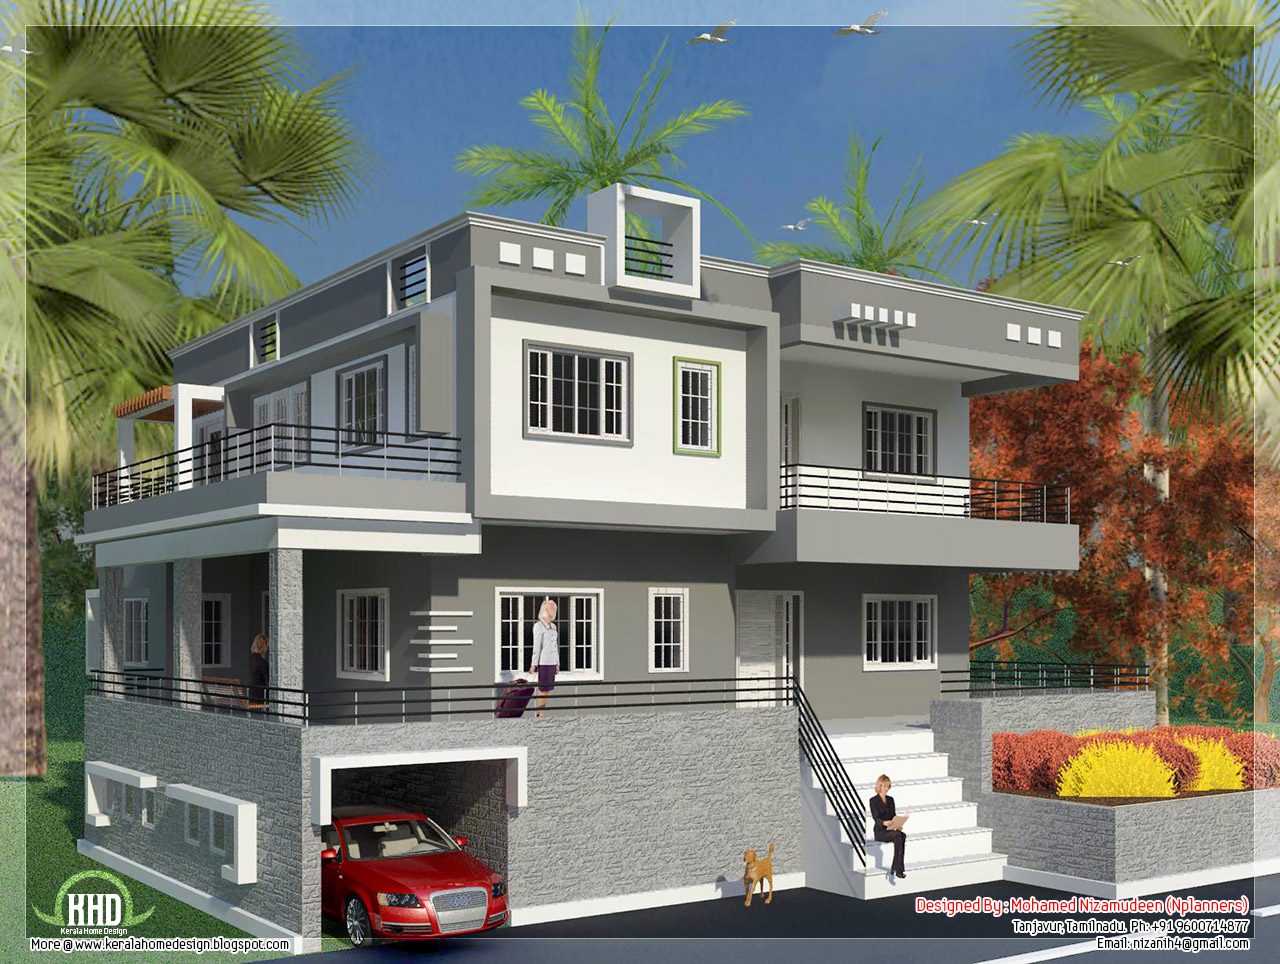 Design Of A Small House In India | Modern Design